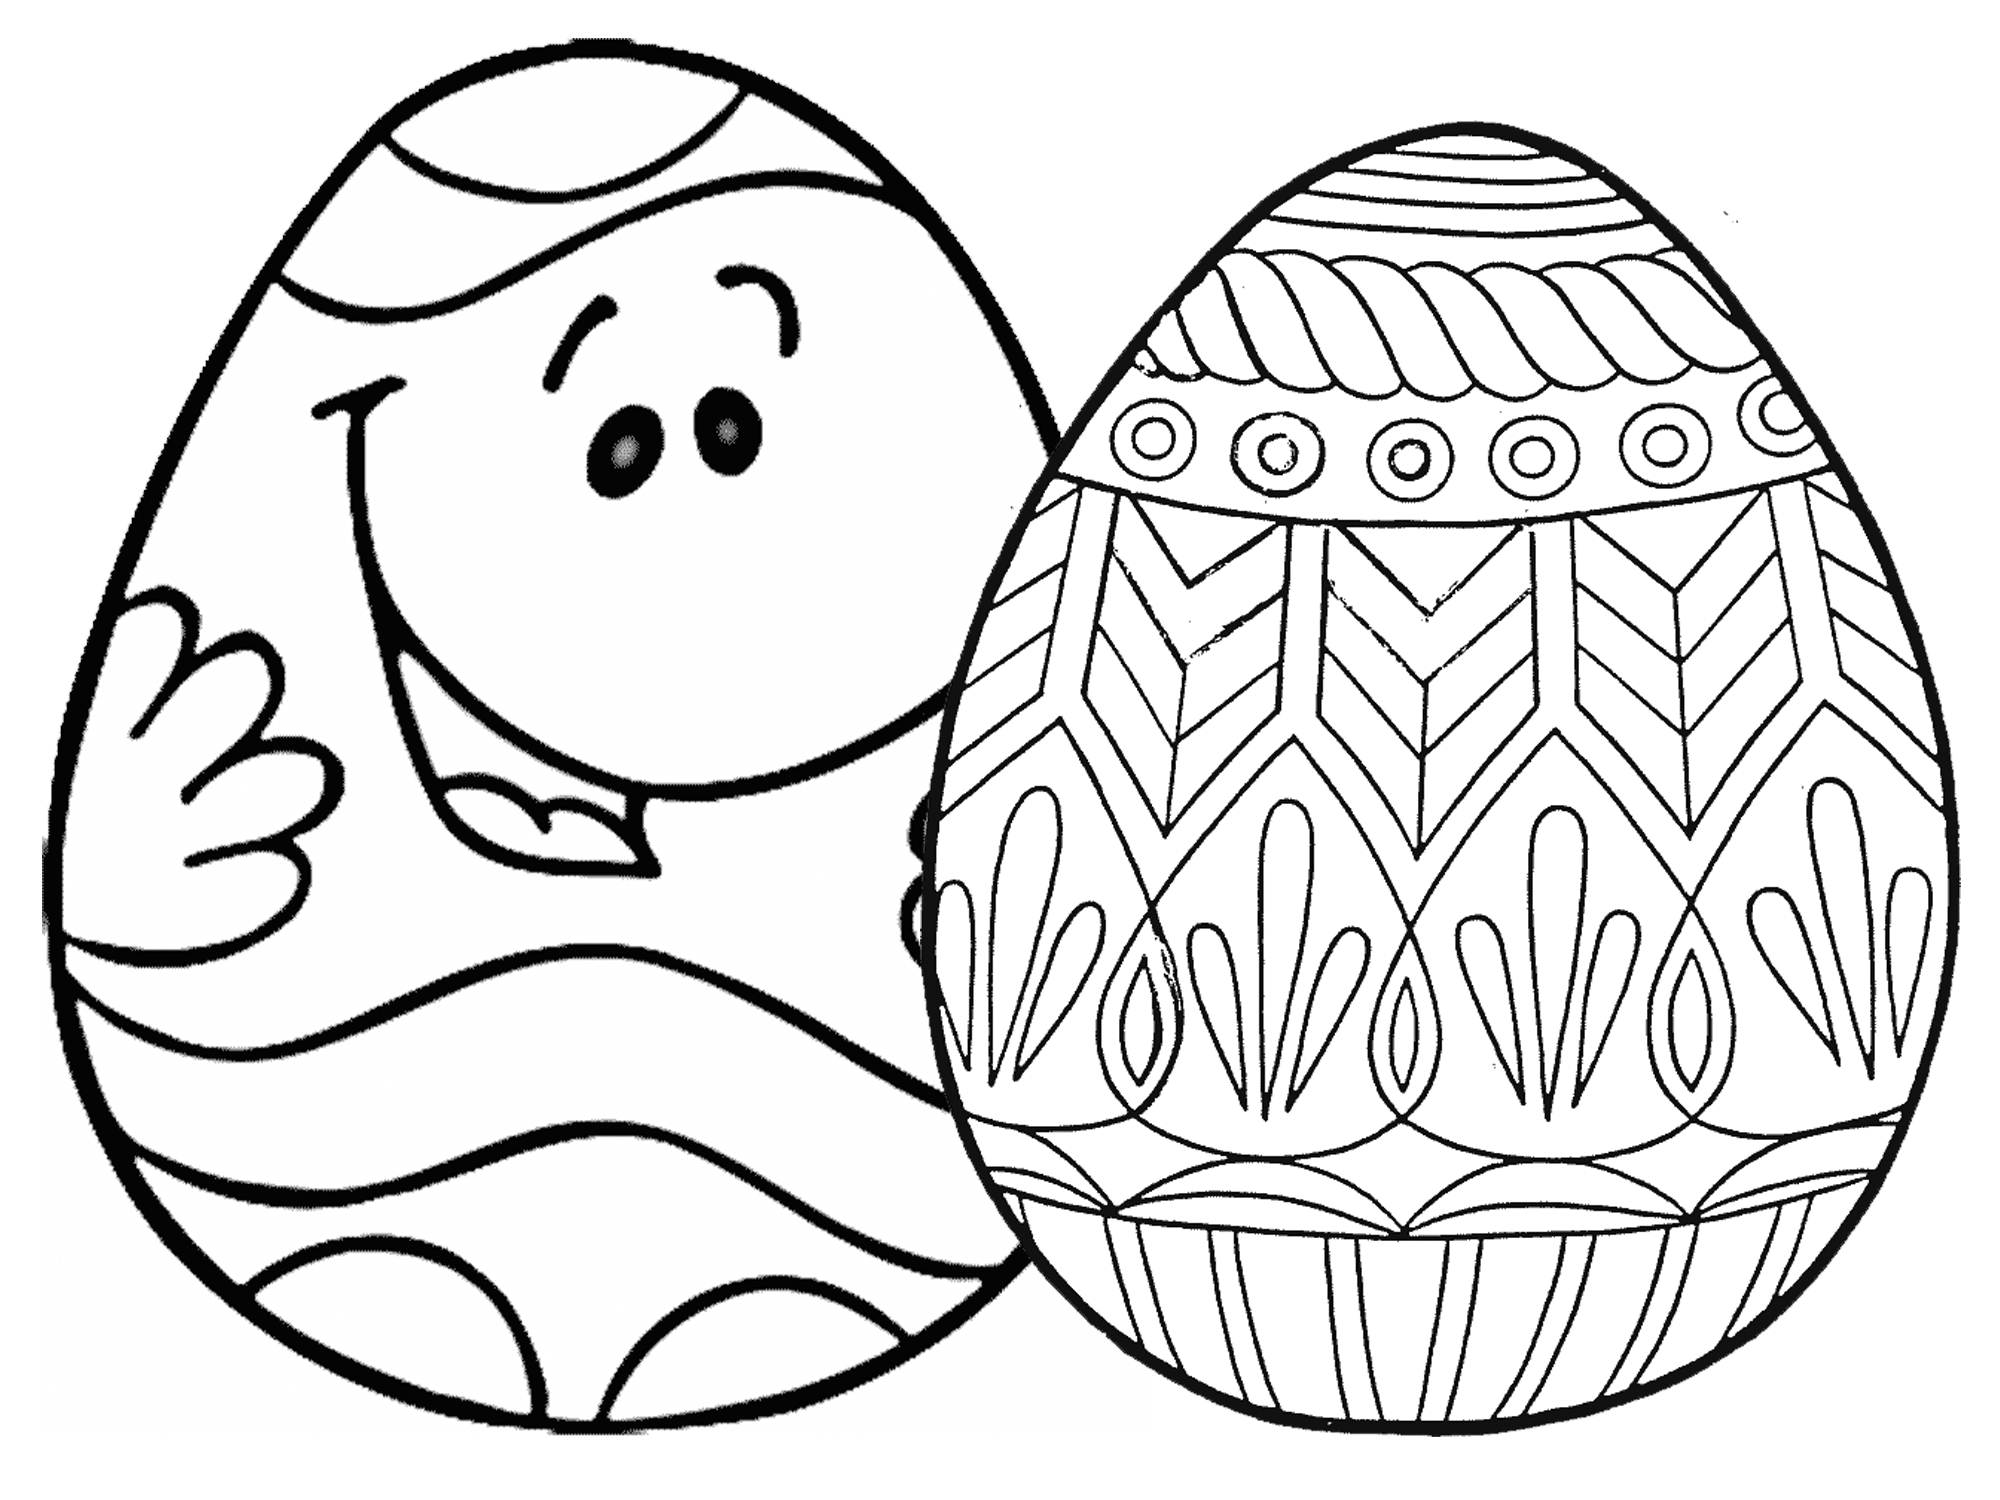 2000x1500 Nice Dragon Egg Coloring Pages Festooning